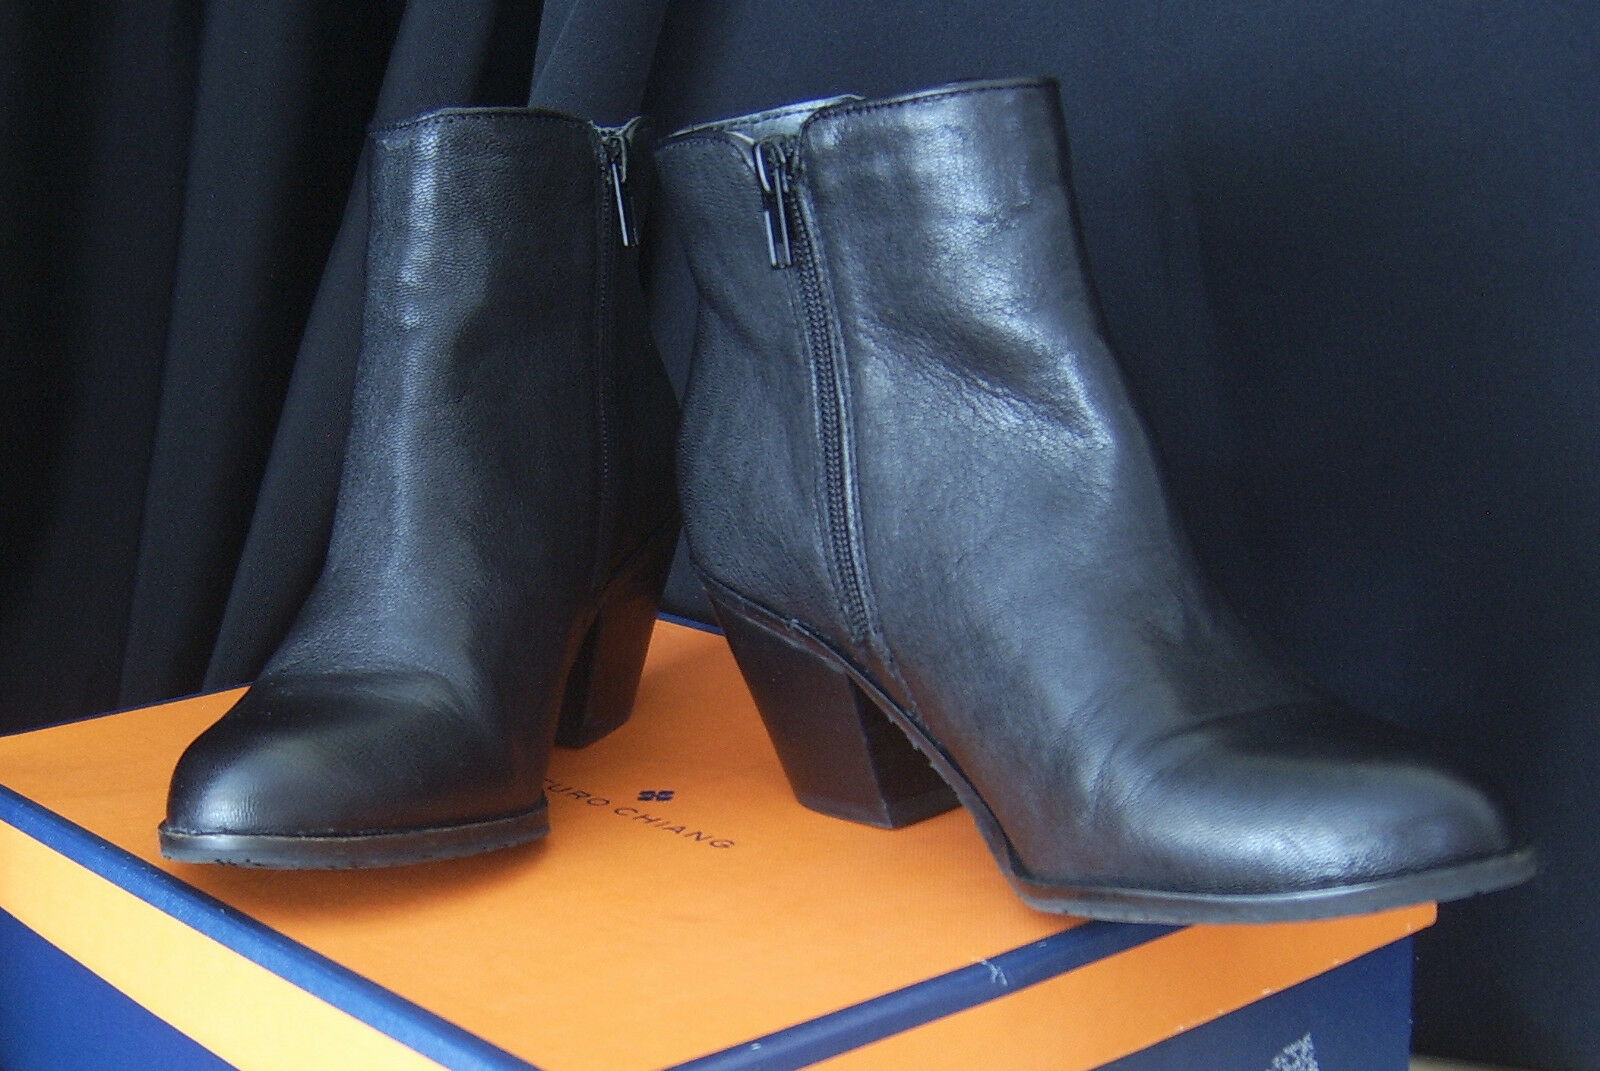 ARTURO CHAING At-Sprinkle BlackLeather Inside Zipper Ankle Boots Size 7 1/2 M